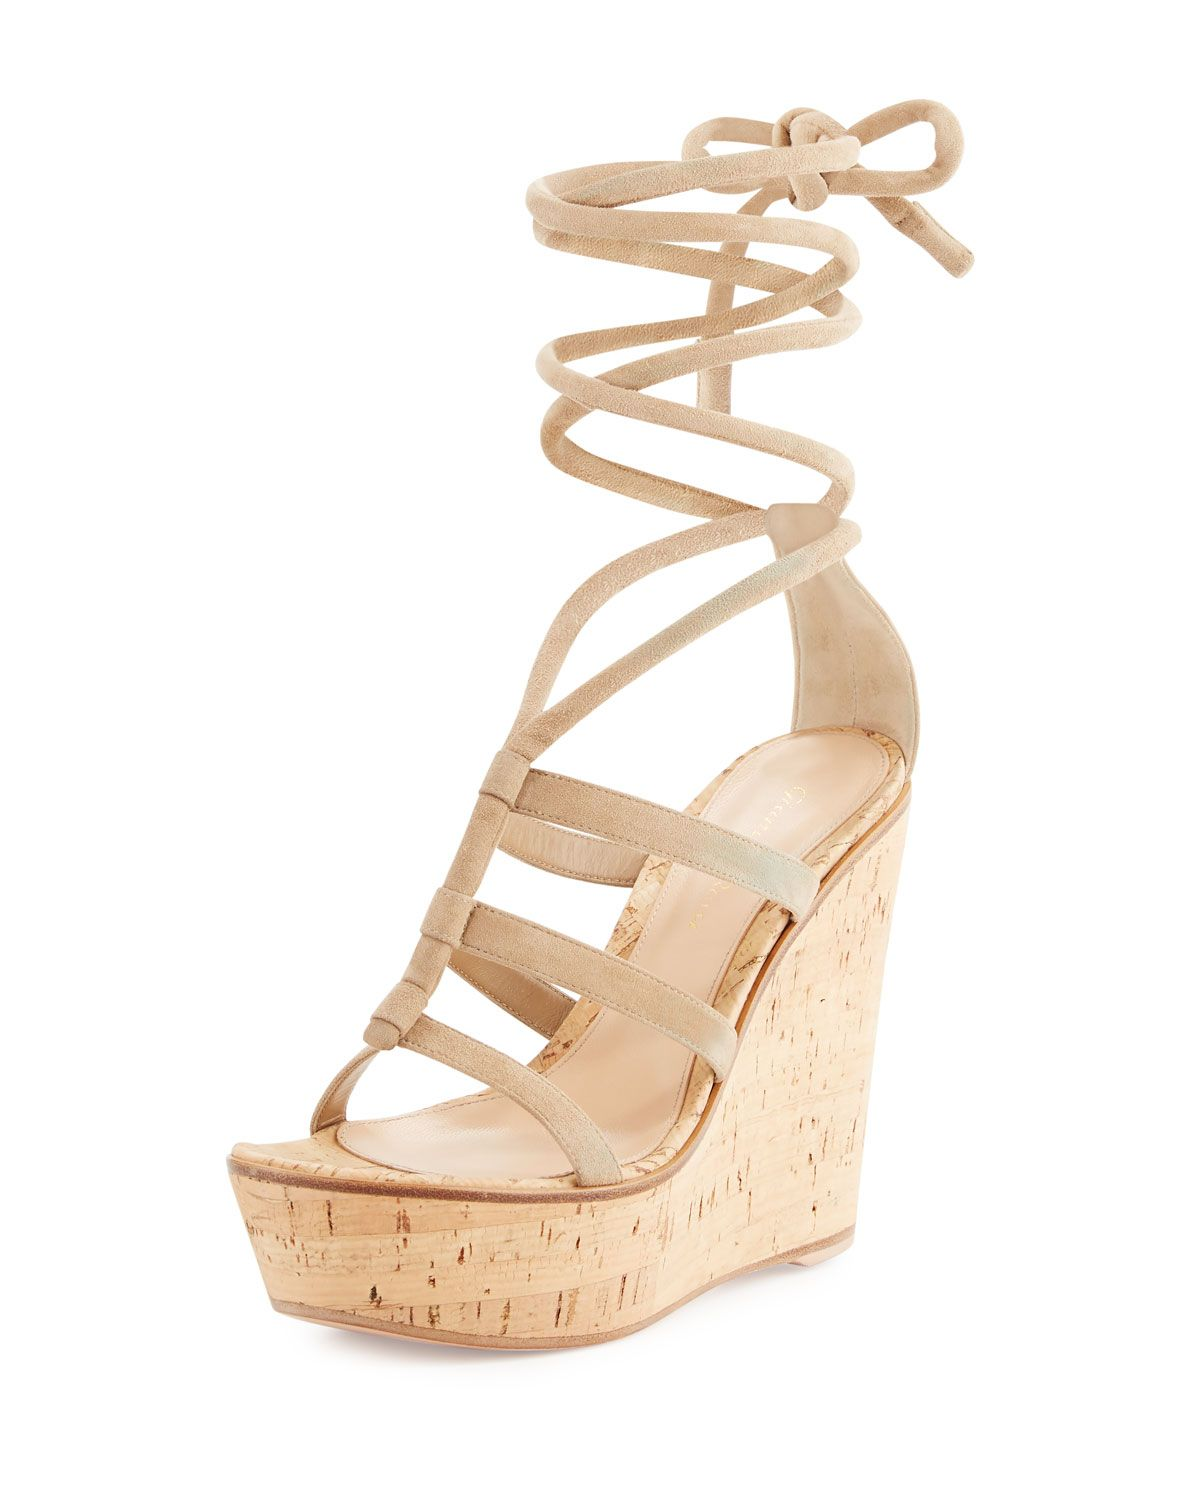 6ad90f3fedb GIANVITO ROSSI SUEDE ANKLE-WRAP WEDGE SANDAL.  gianvitorossi  shoes ...